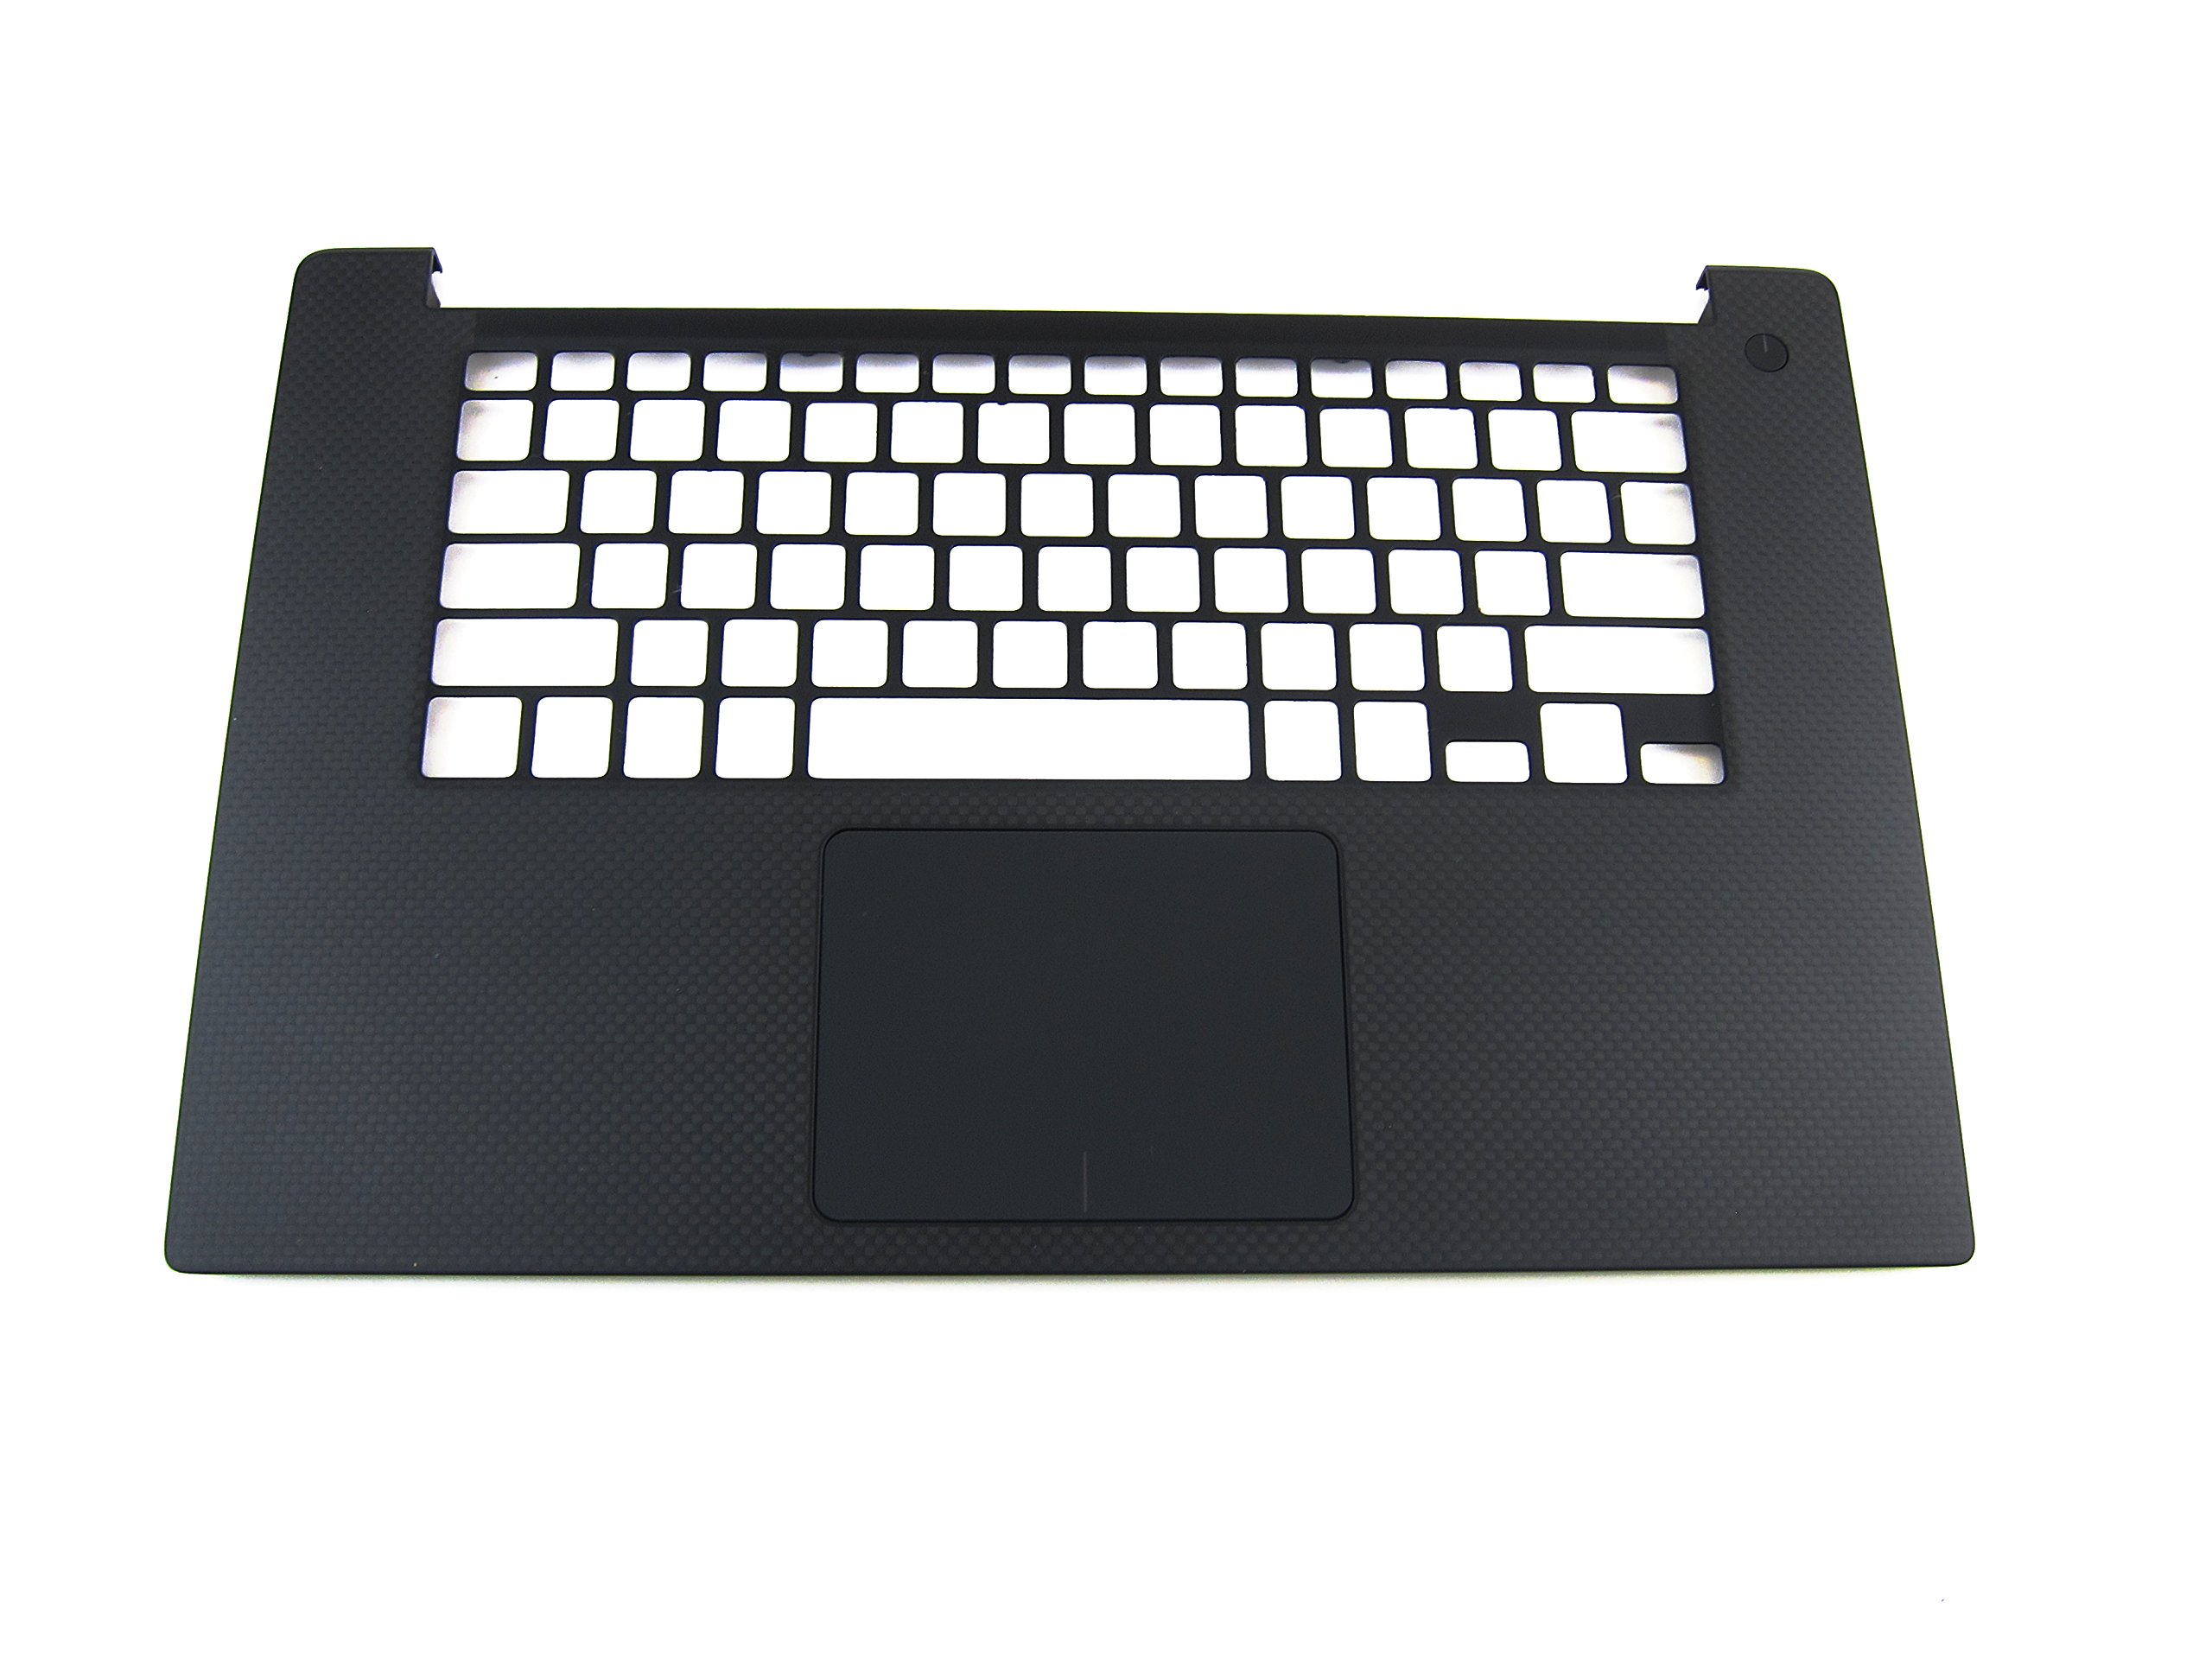 Dell XPS 15 (9550) Precision 5510 Palmrest Touchpad Assembly - KYN7Y by Dell